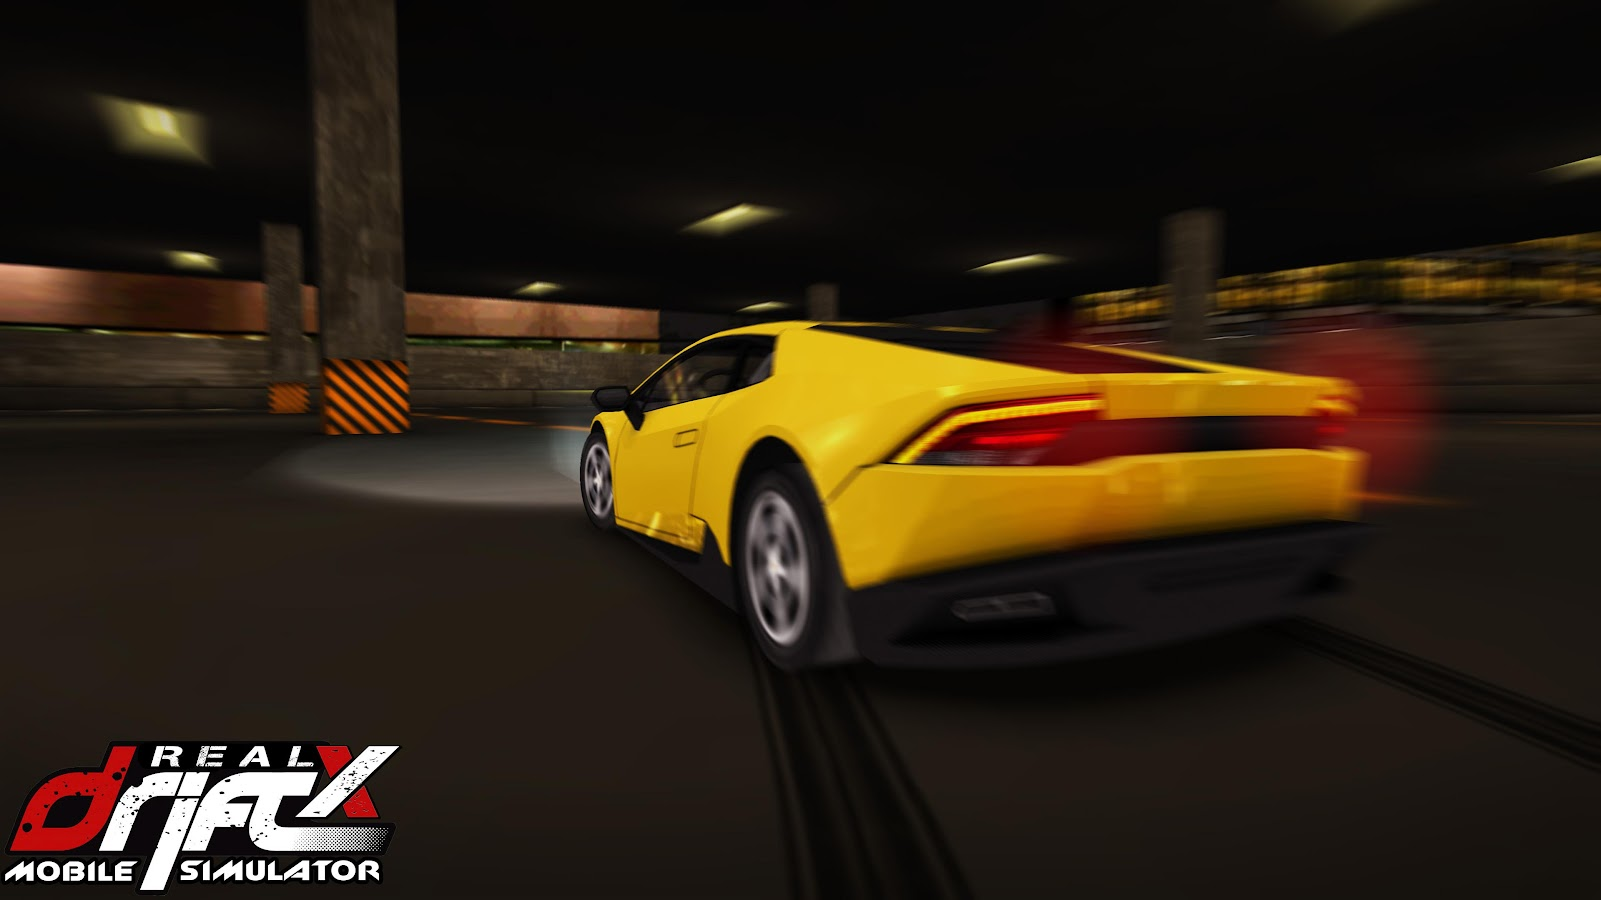 Real Drift X Car Racing Screenshot 11